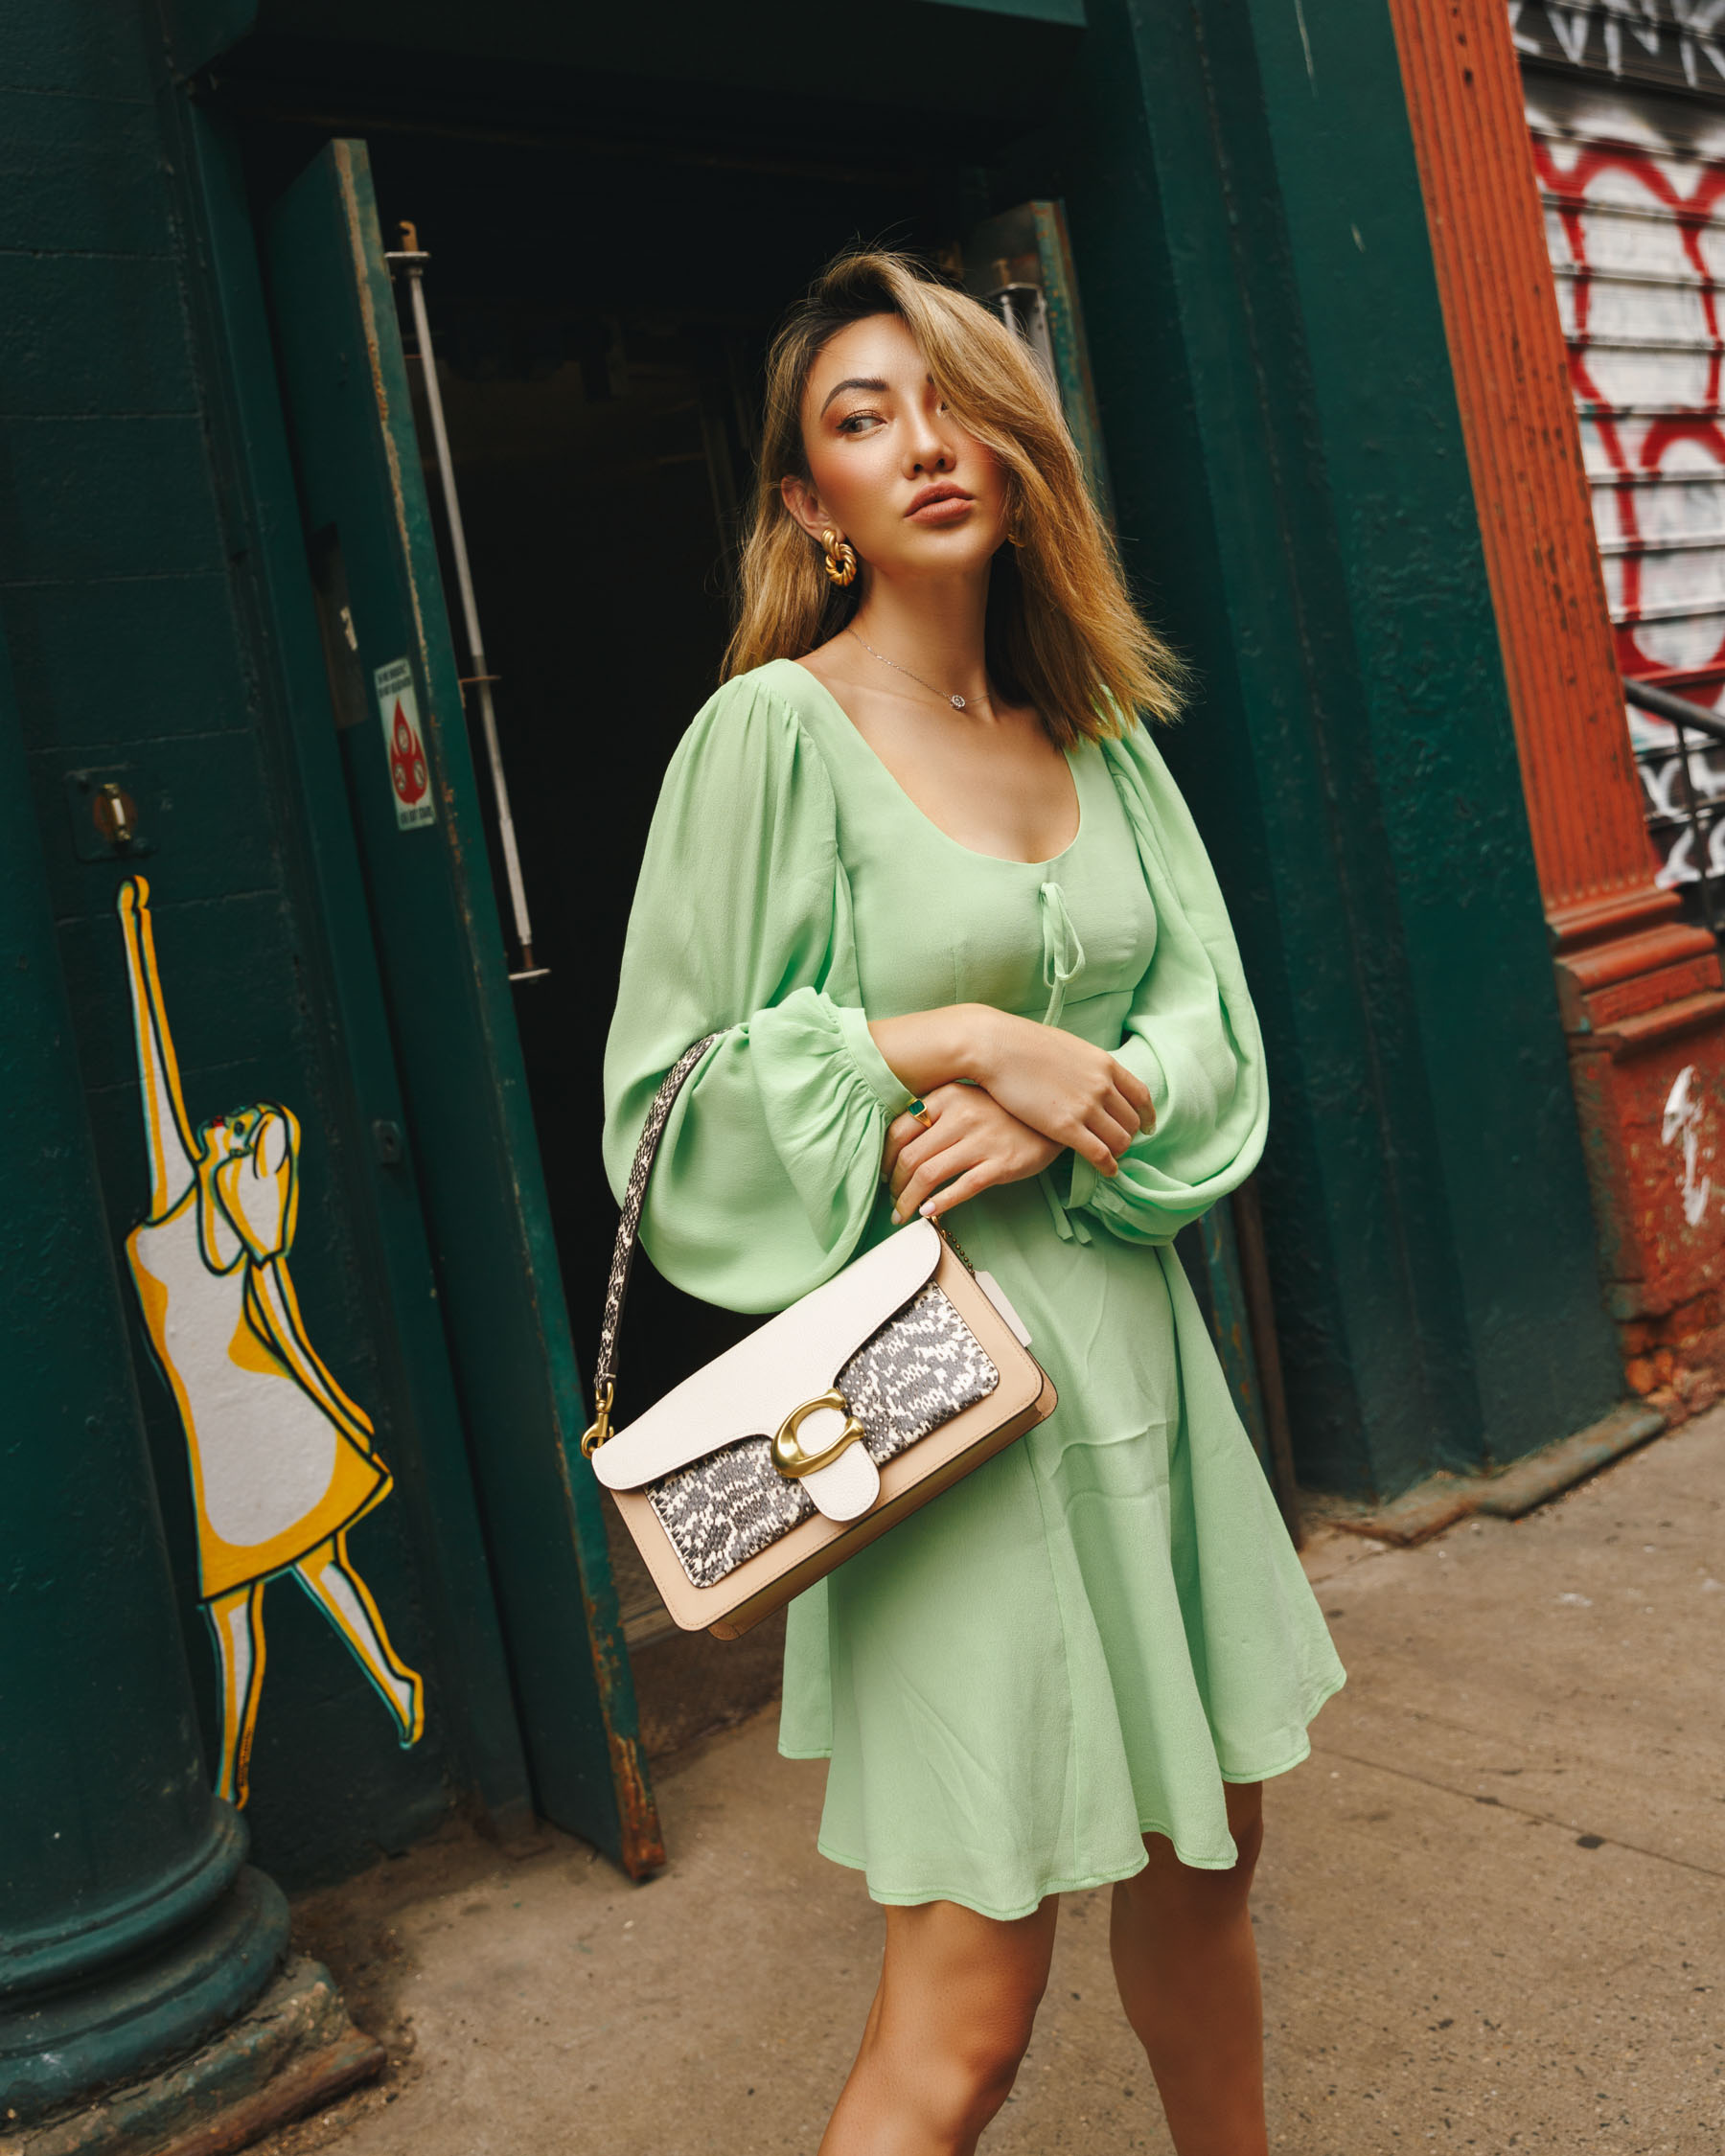 new fall beauty launches, pistachio green dress, fall beauty trends // Notjessfashion.com